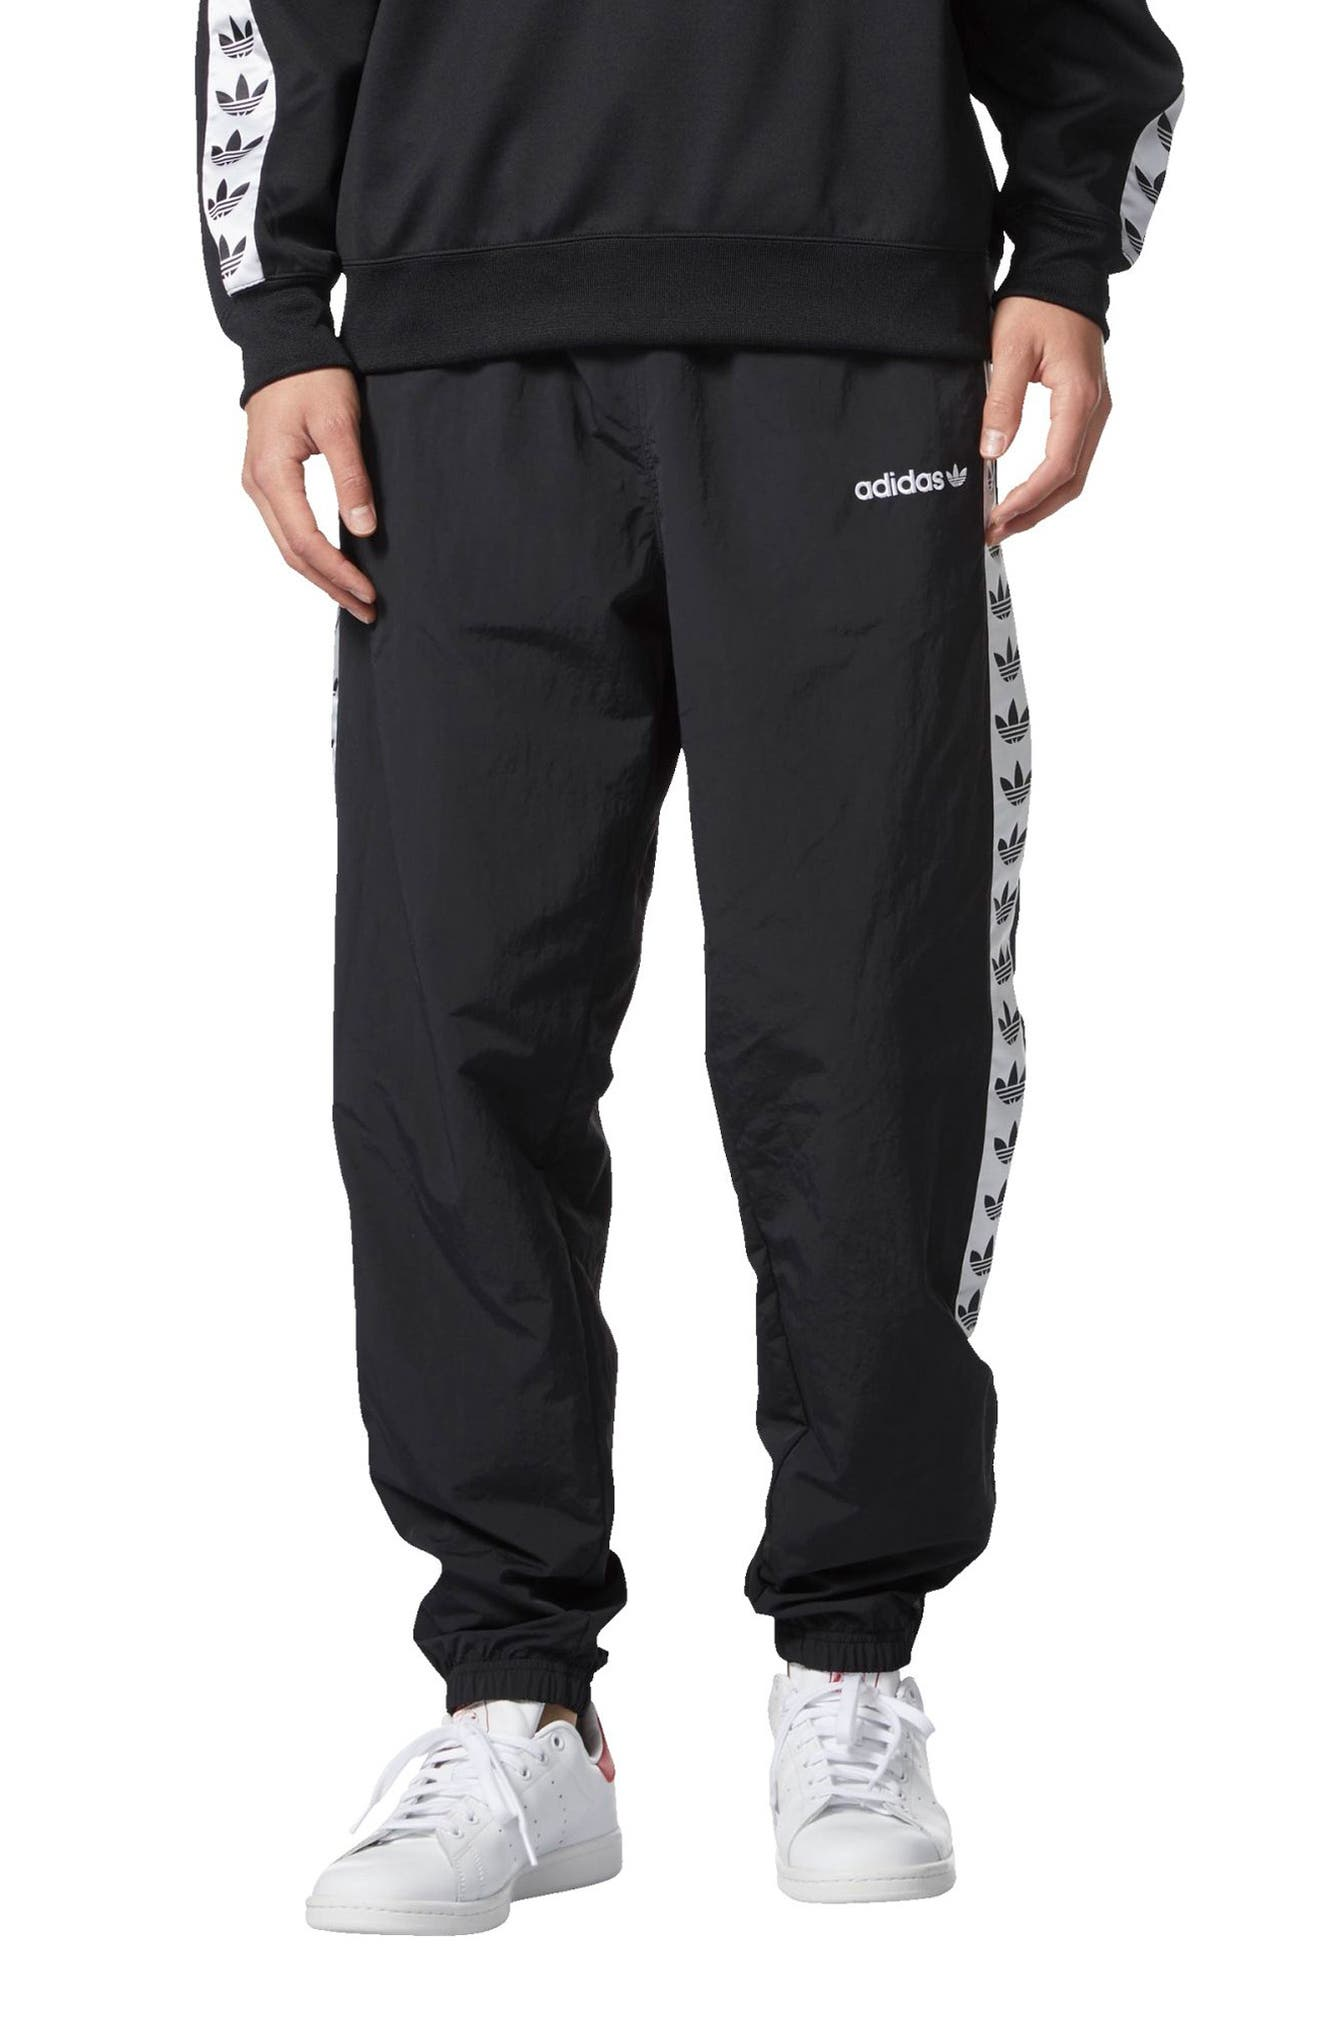 TNT Trefoil Wind Pants